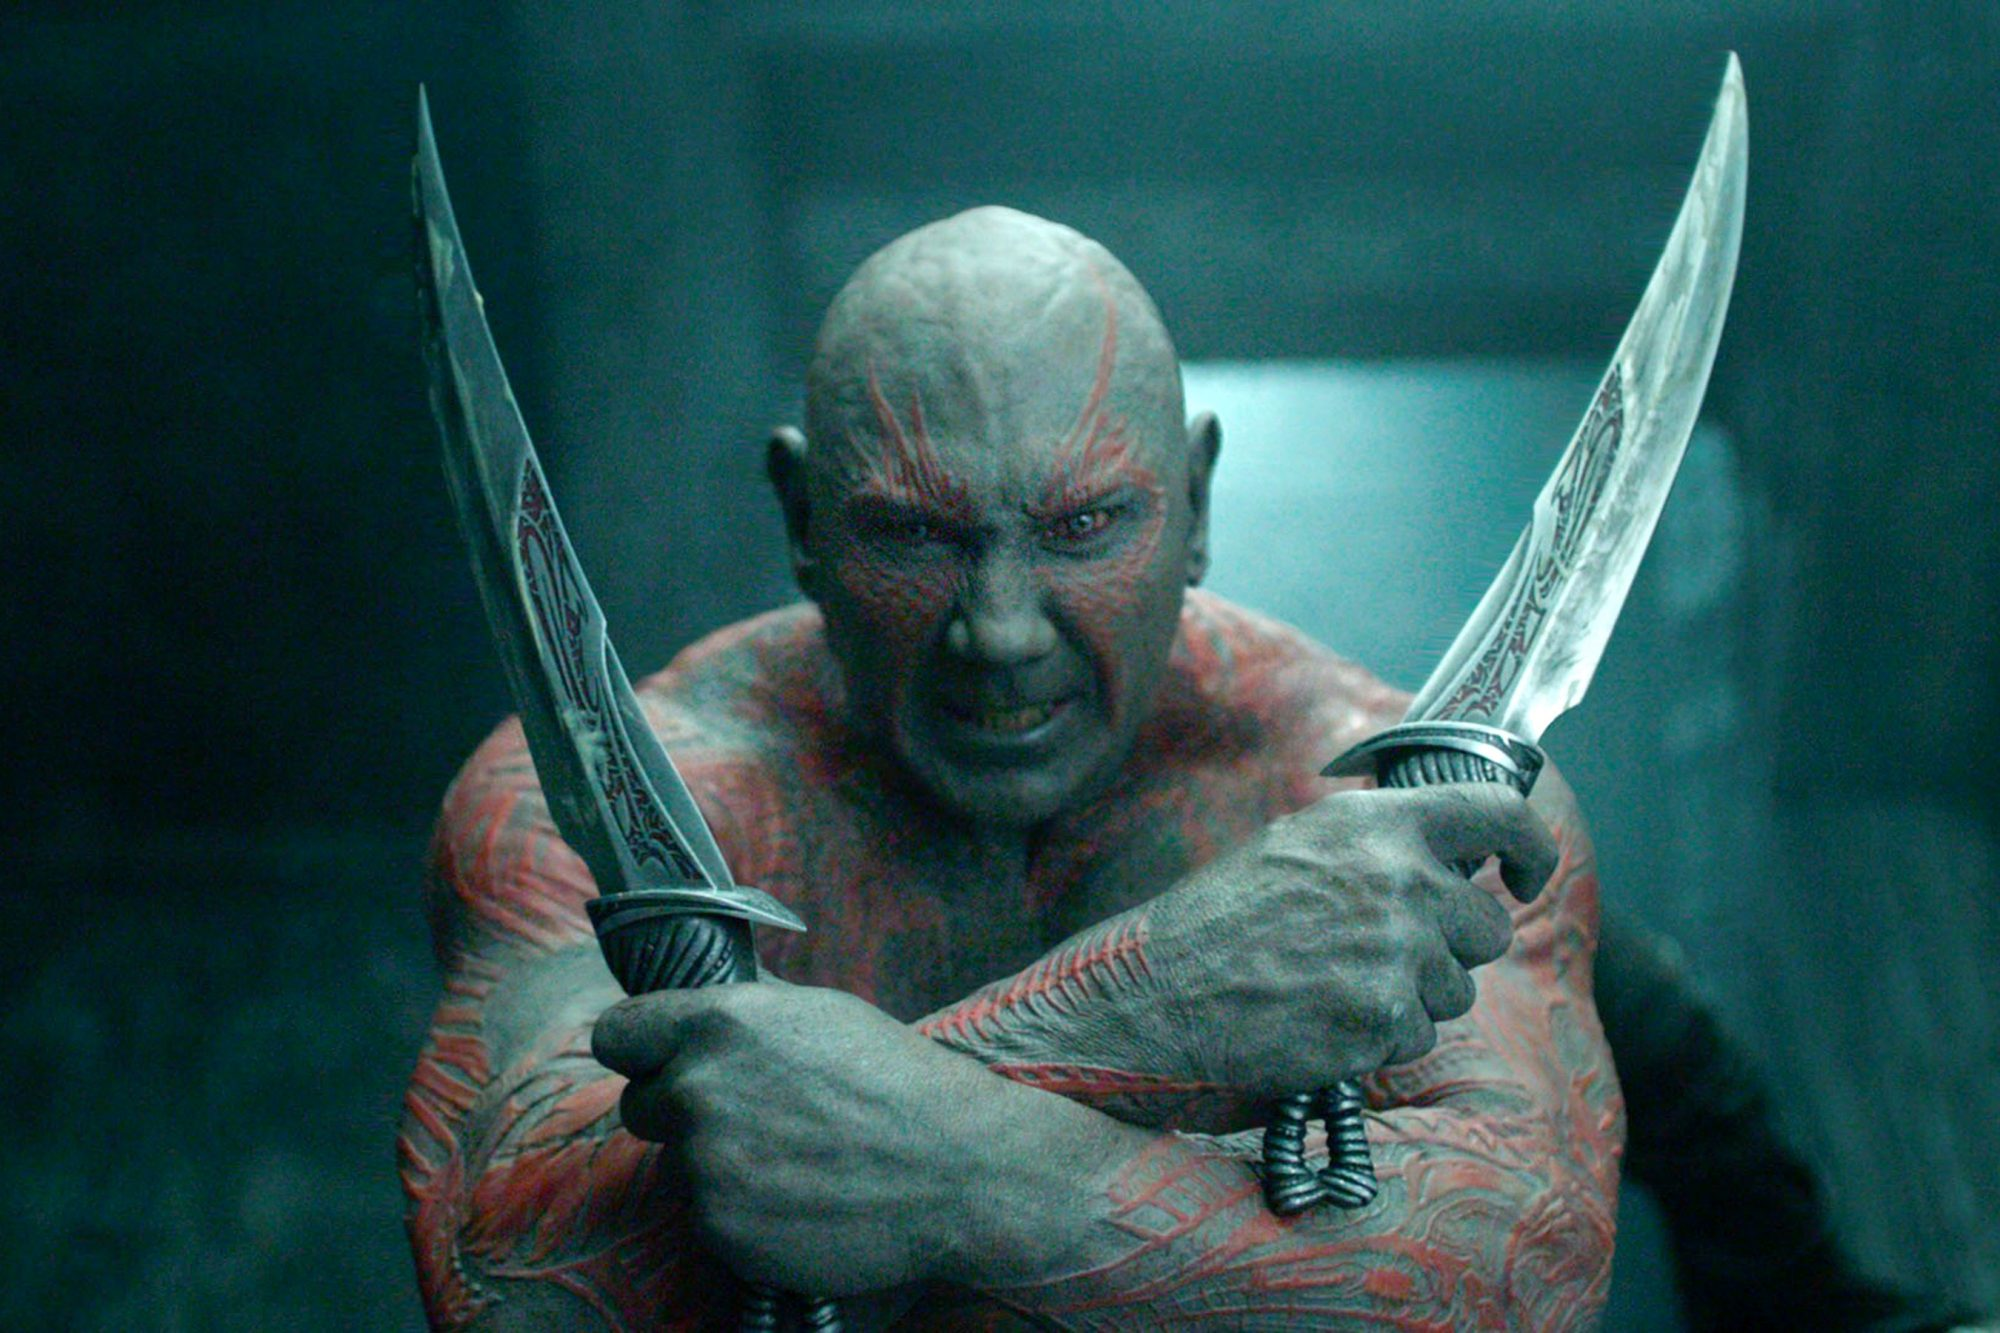 GUARDIANS OF THE GALAXY, Dave Bautista, 2014. /©Walt Disney Studios Motion Pictures/Courtesy